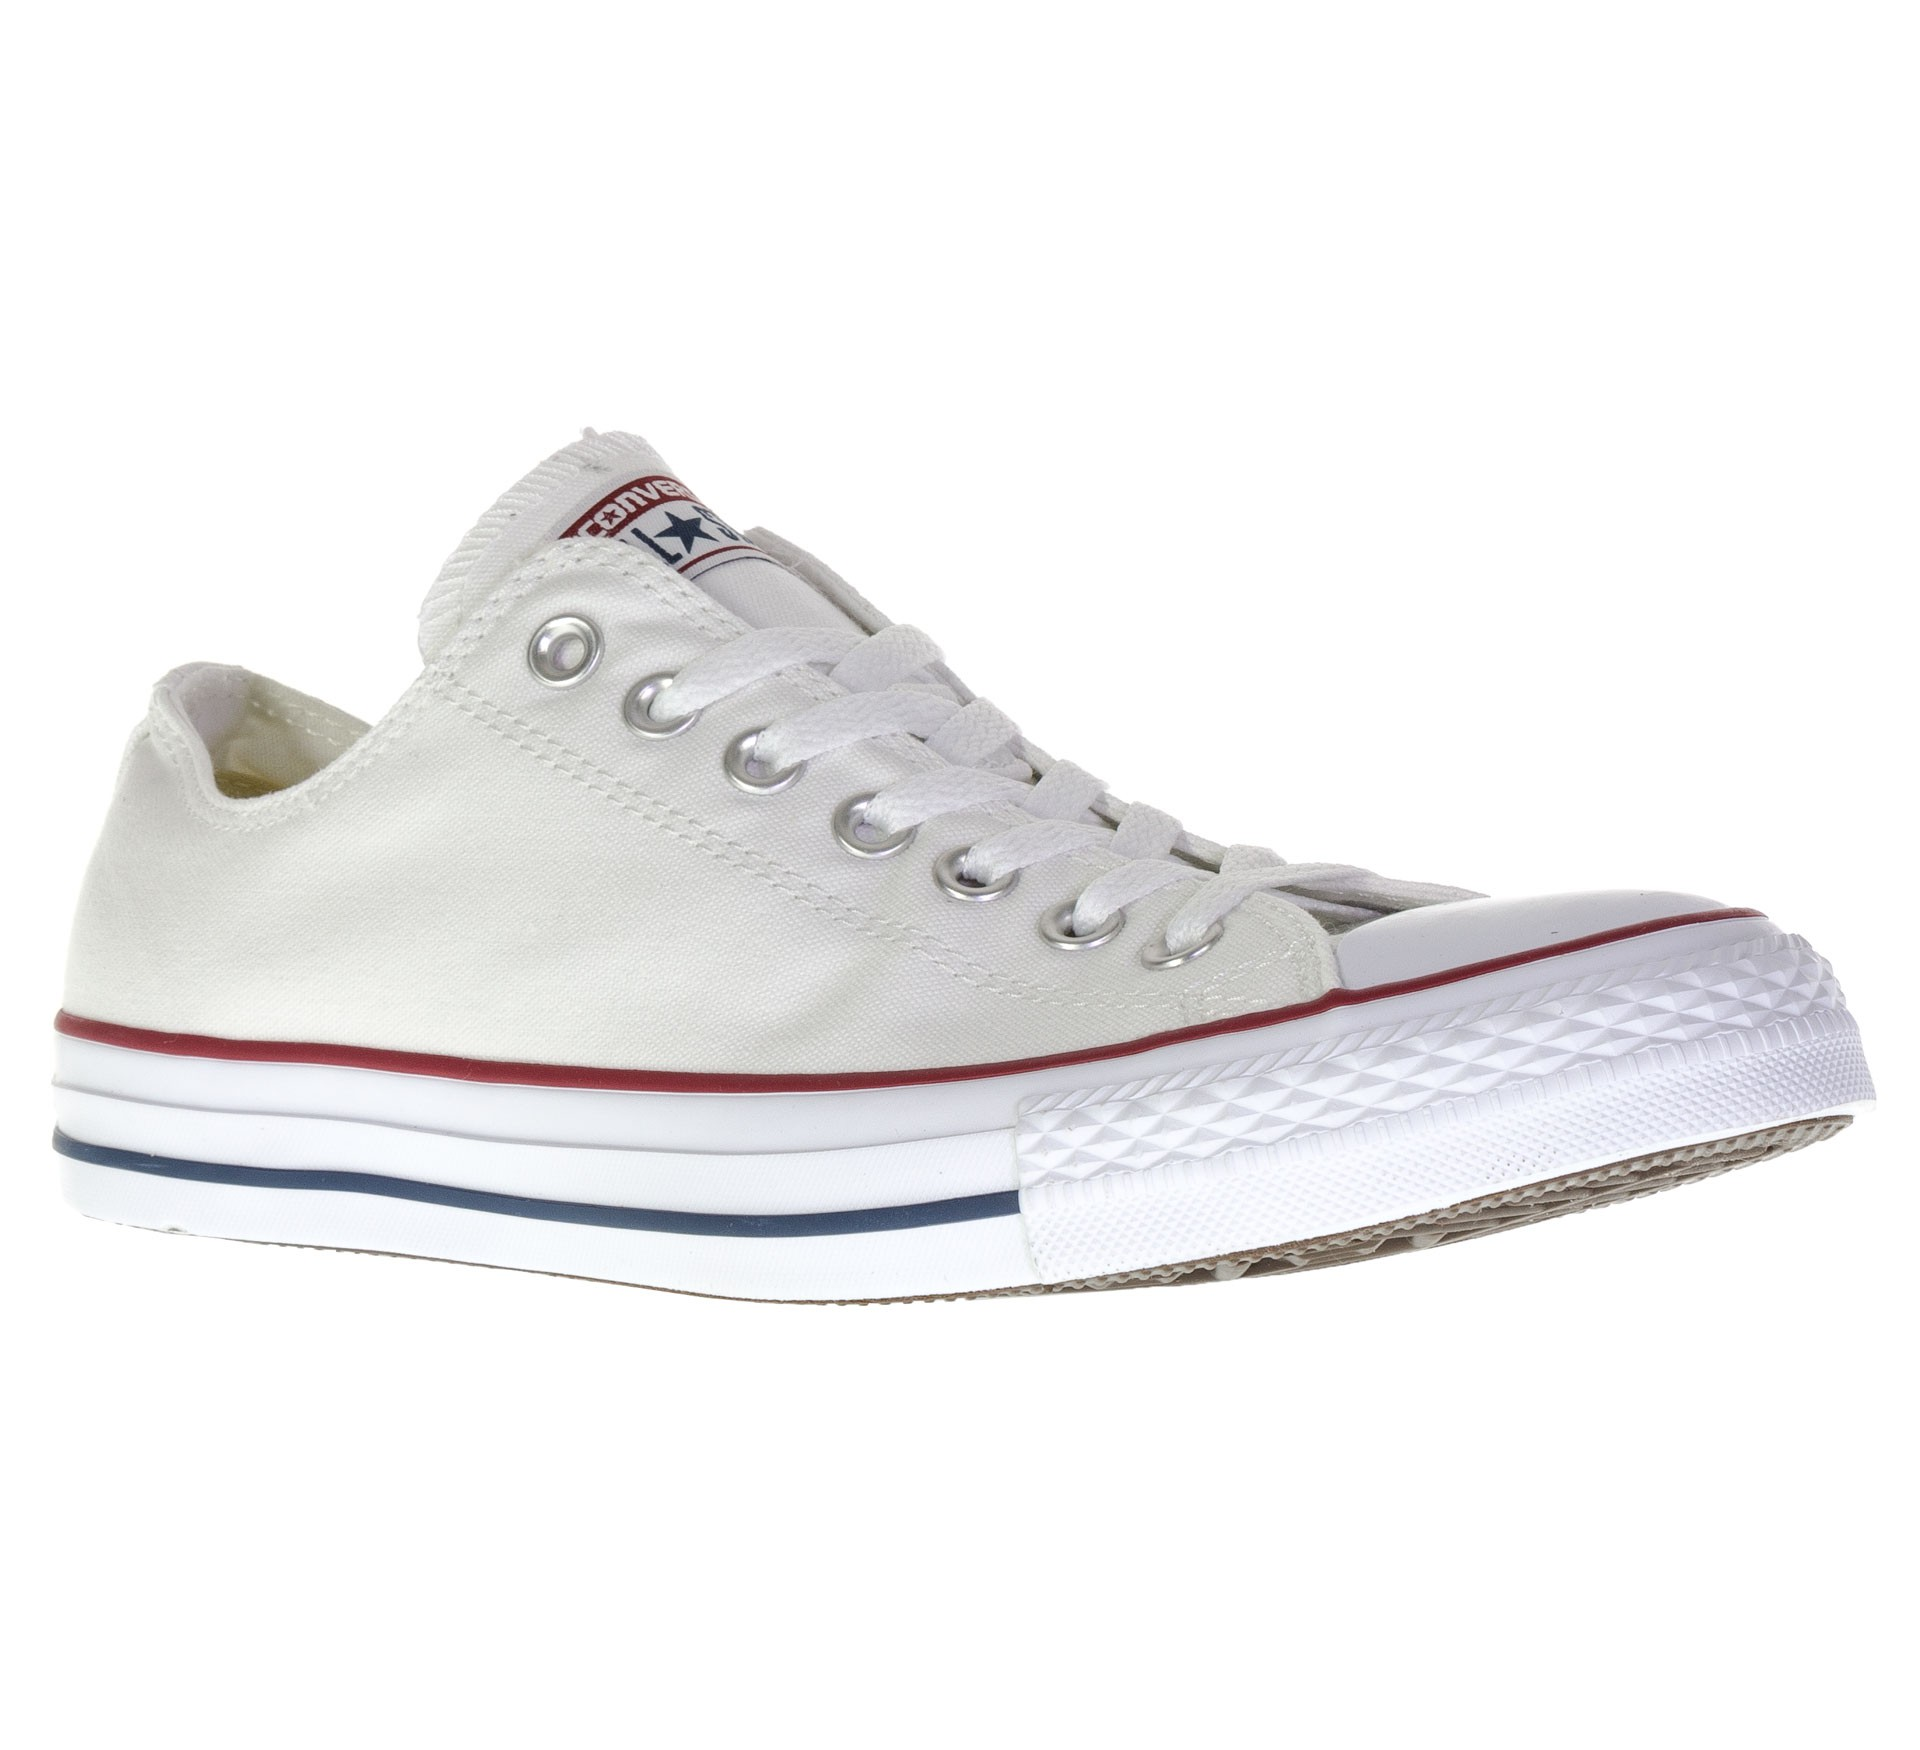 Plutosport - Converse All Star Ox